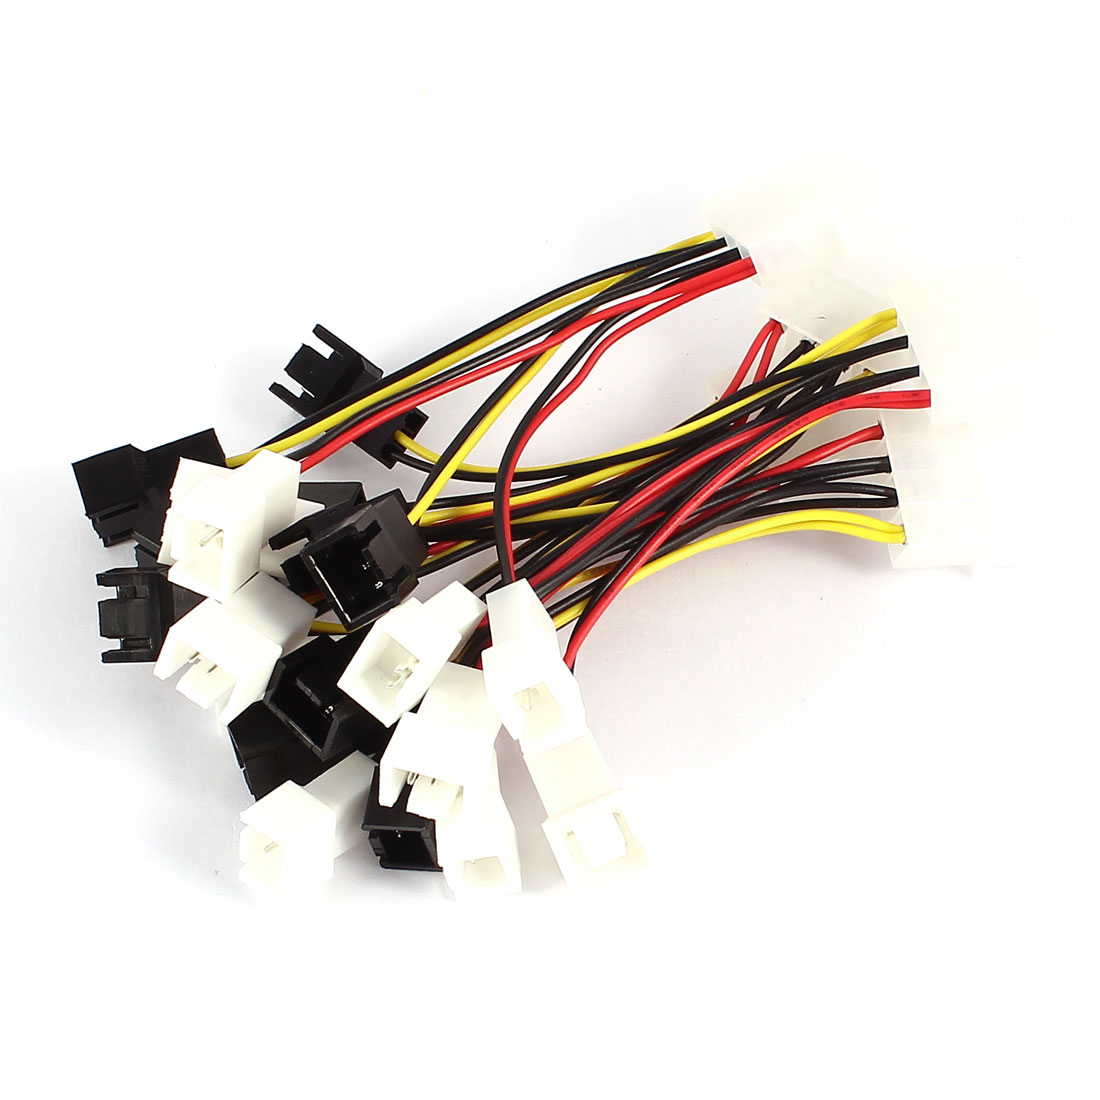 5 Pcs PC Cooling Fan 4 x 2P to 4 Pins Male IDE Power Cable Adapter Connector